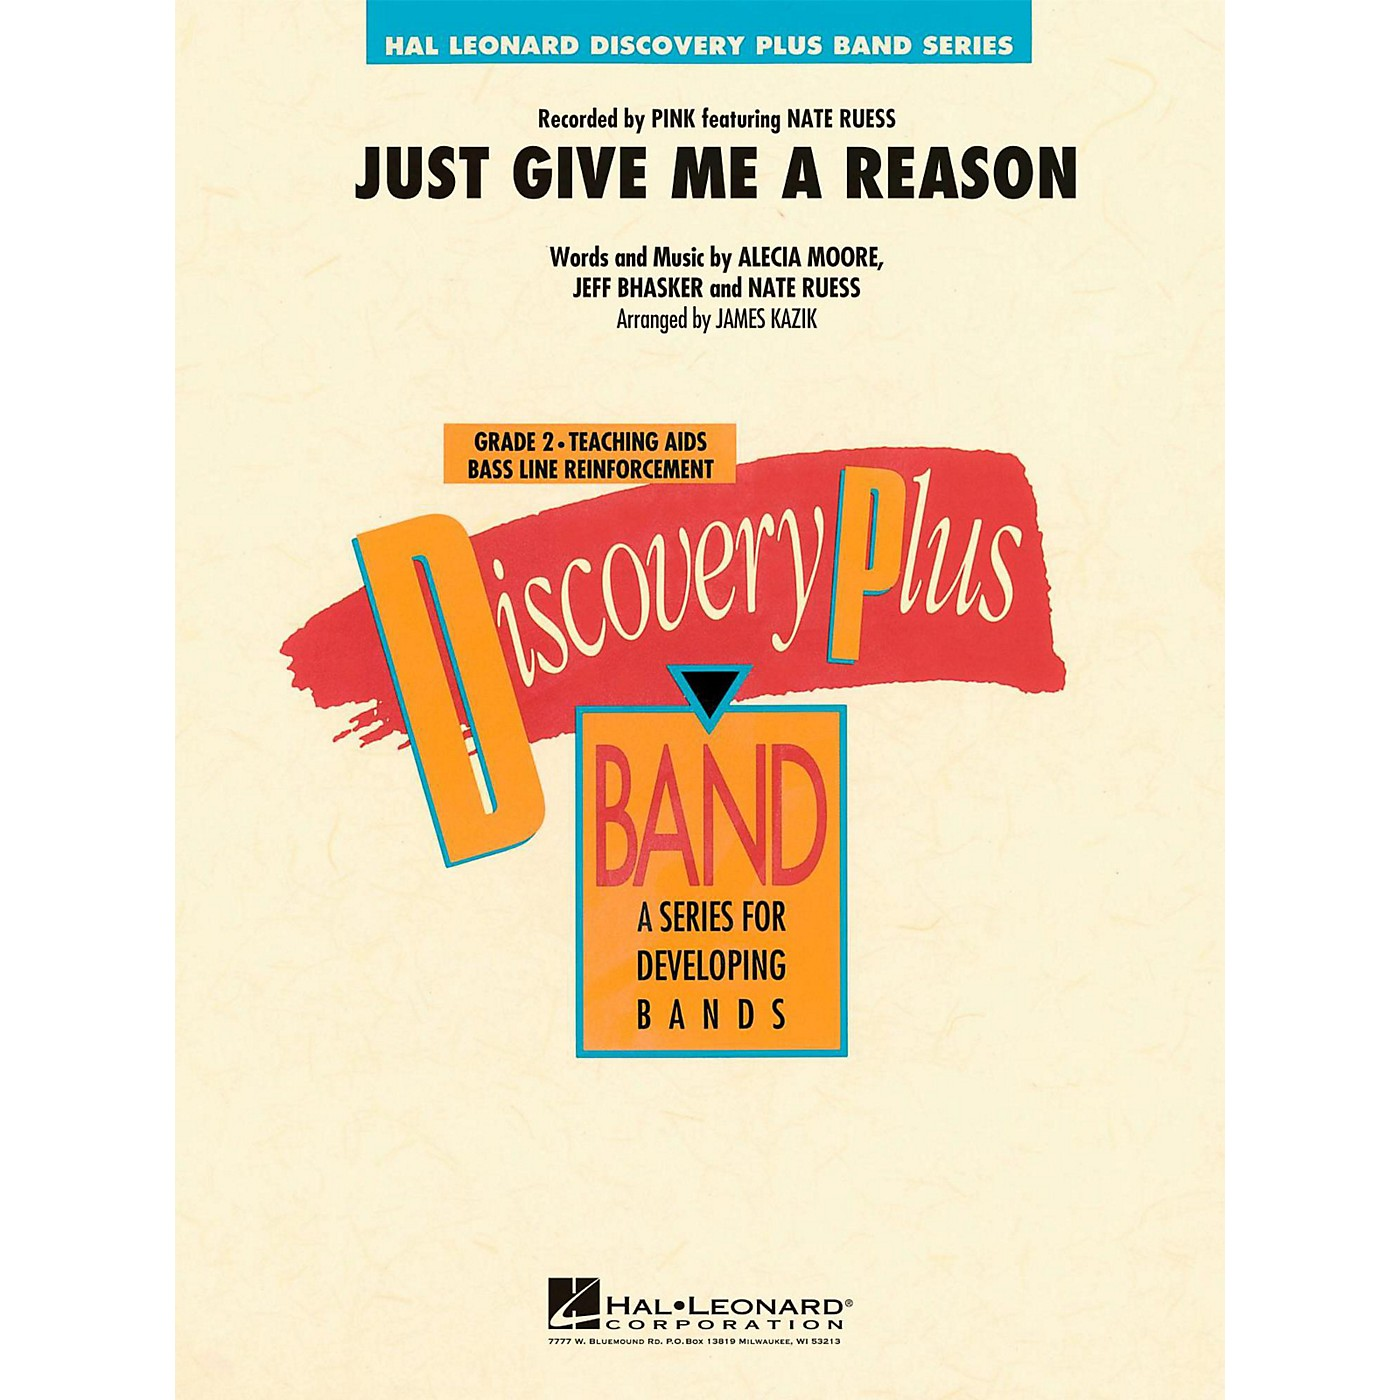 Hal Leonard Just Give Me A Reason - Discovery Plus Concert Band Level 2 thumbnail